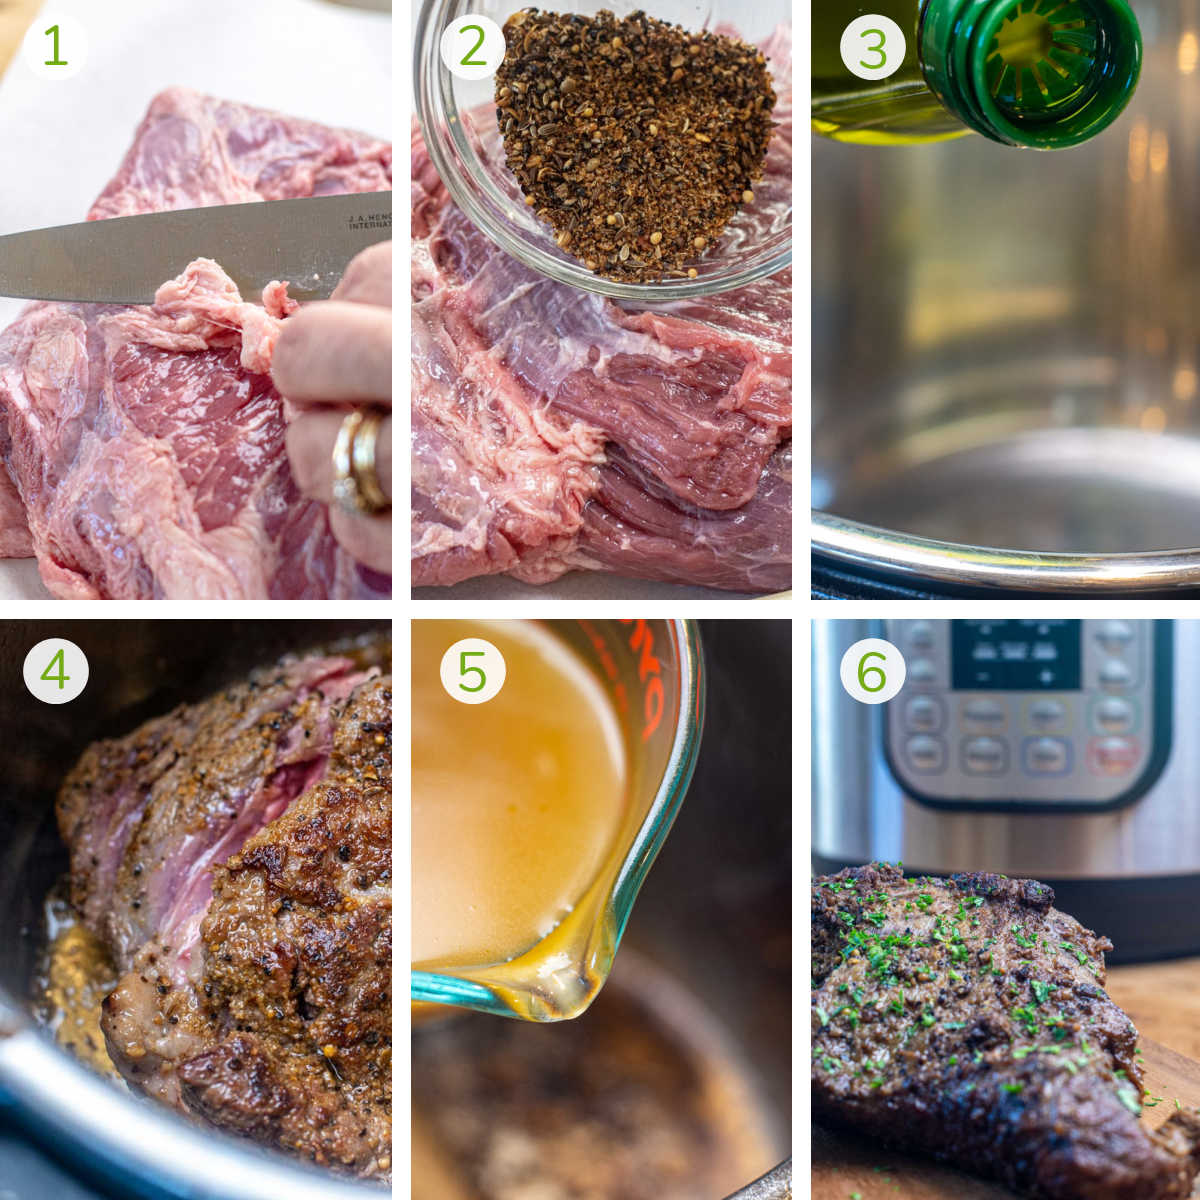 six photos showing trimming the fat off the brisket, seasoning and searing it and then cooking it in the pressure cooker using beef broth.